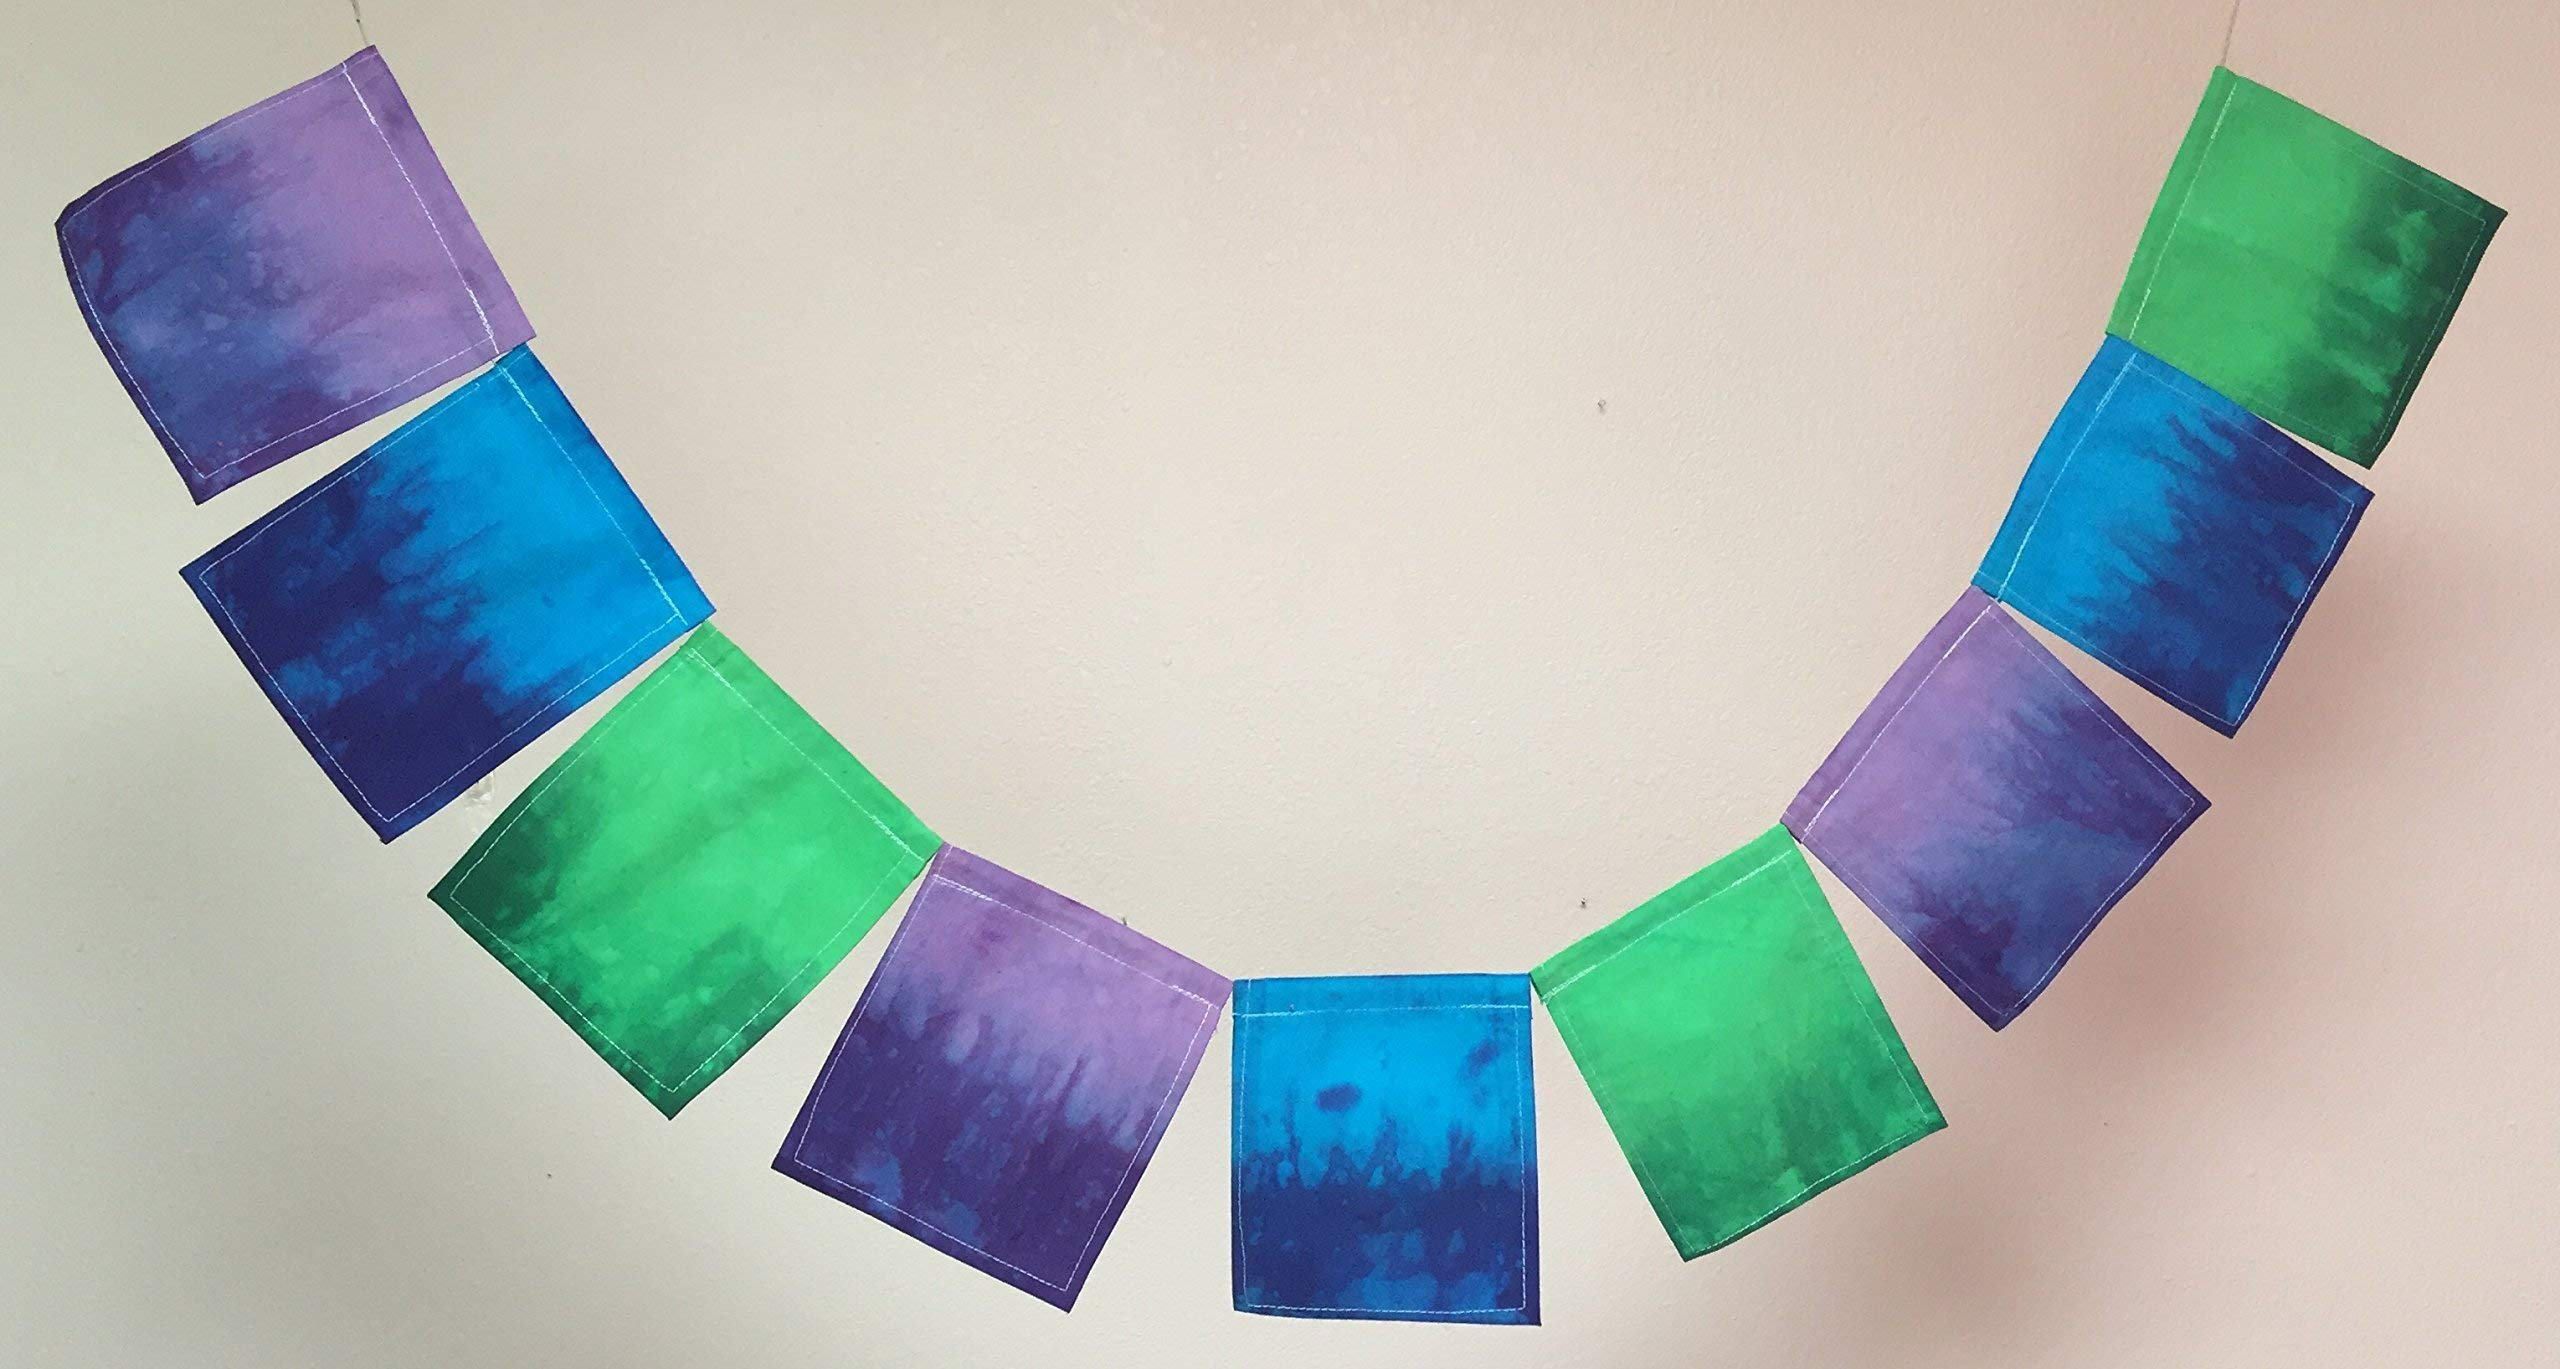 Custom Prayer Flag, Blue/Green/Purple. All proceeds to families in Mexico. Free domestic shipping.